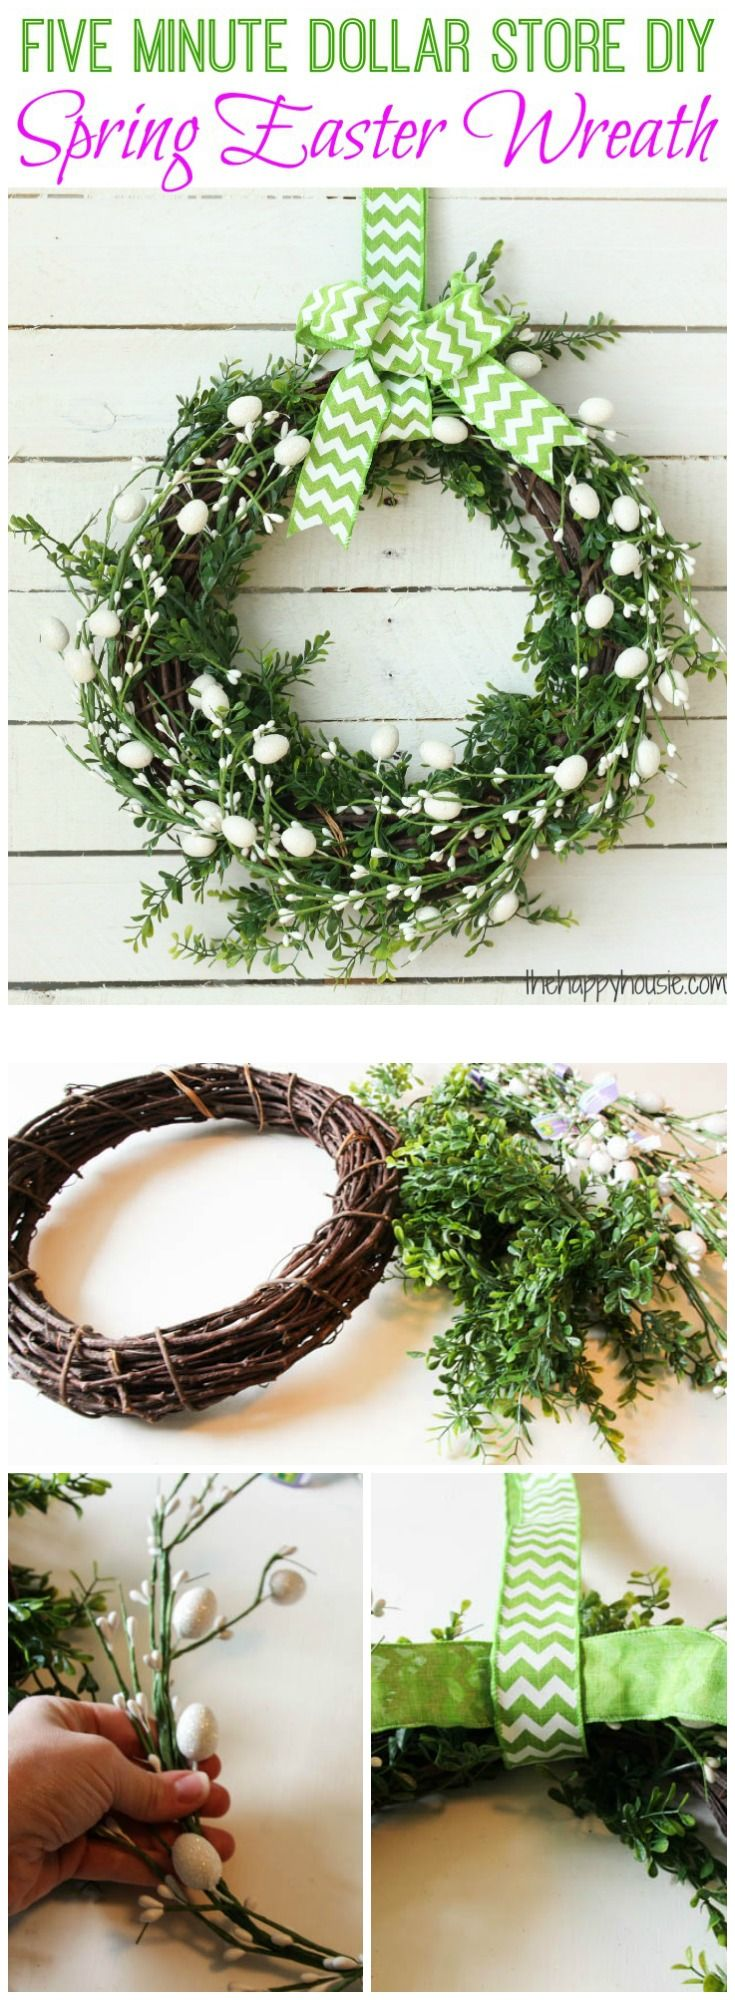 How to make your own Five Minute Dollar Store DIY Spring Easter Wreath at thehappyhousie.com - This quick and easy wreath will take you five minutes using supplies mainly from the dollar store and is a beautiful spring Easter wreath to dress up your front door or anywhere else in your home that needs a little springy touch.